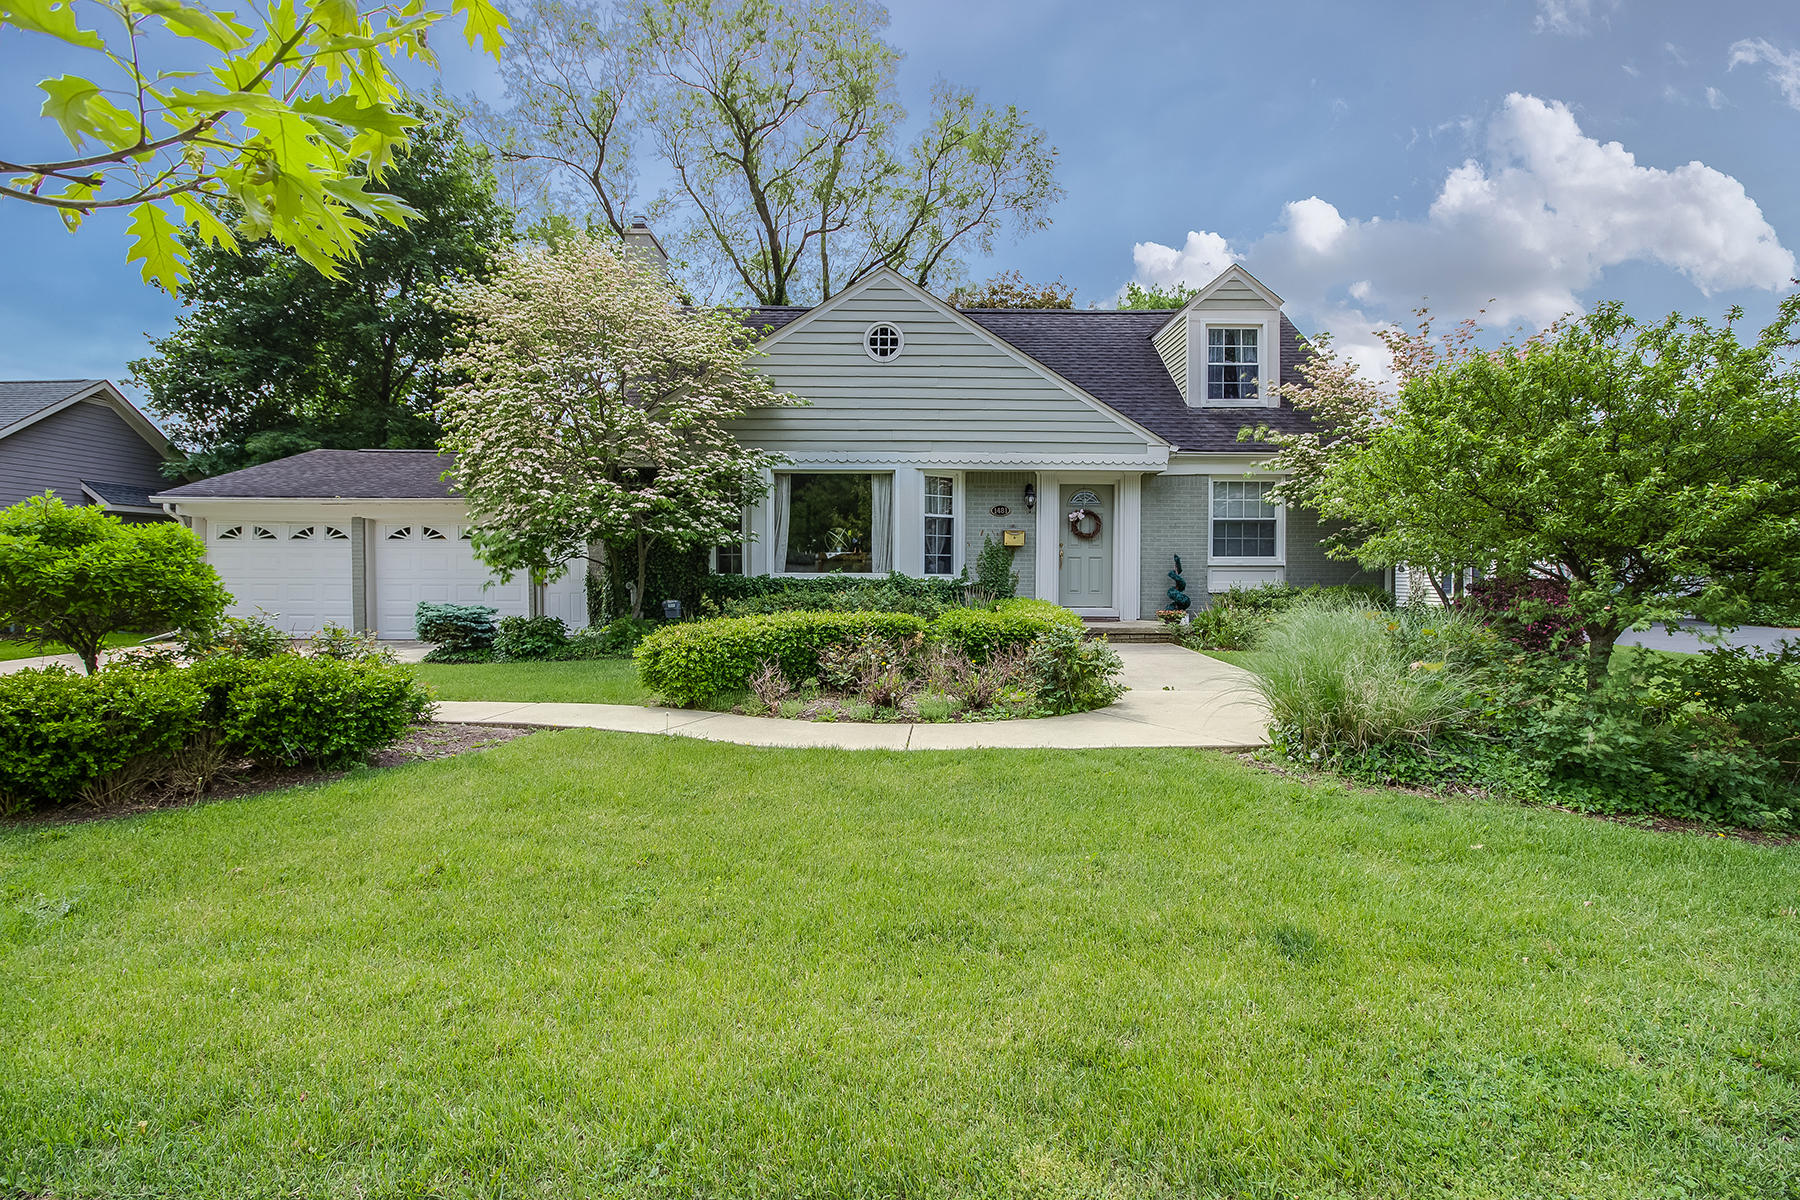 Single Family Home for Sale at Birmingham 1481 W Lincoln Street, Birmingham, Michigan, 48009 United States